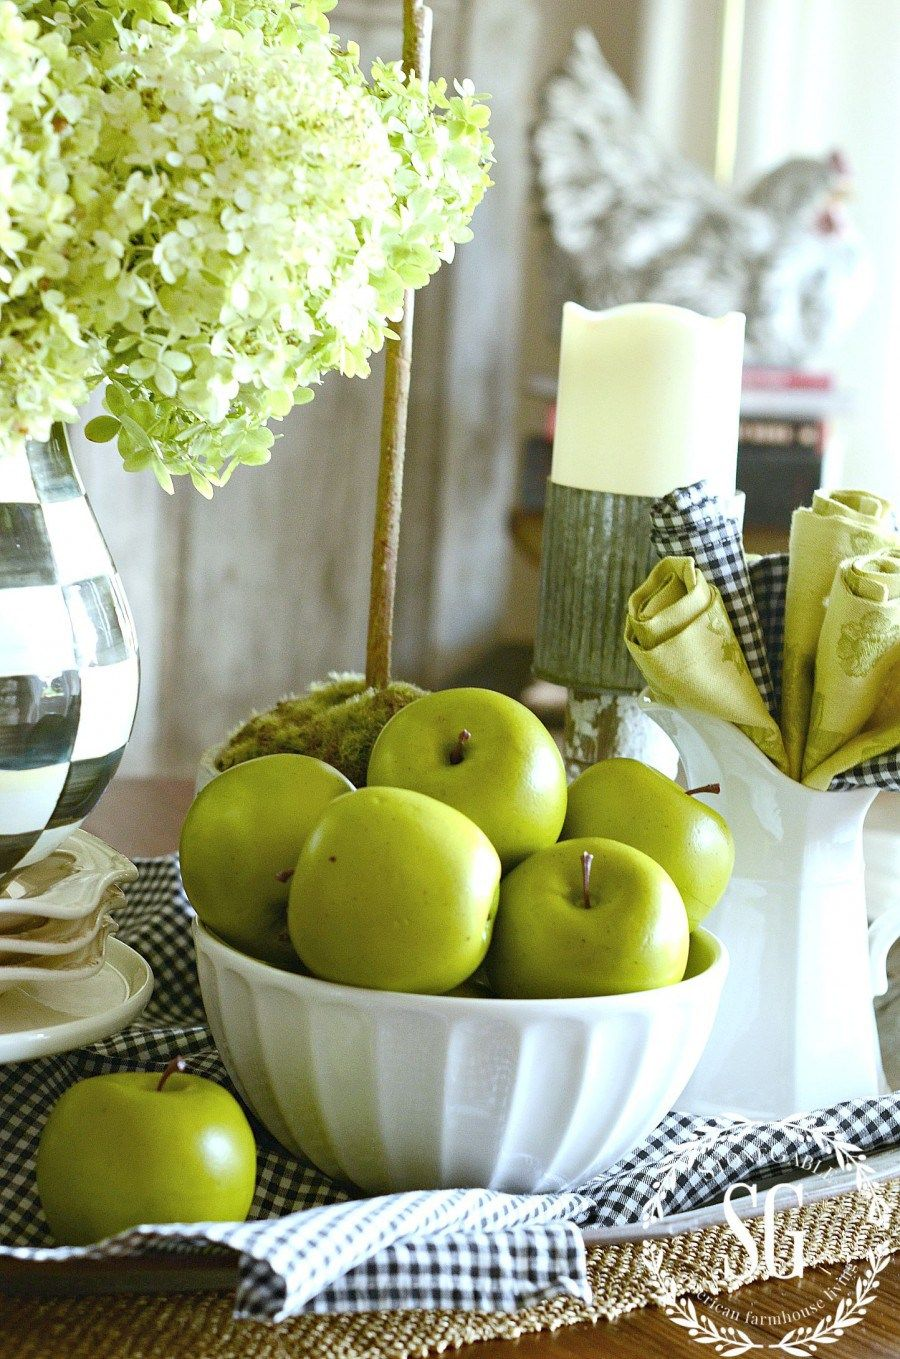 Farmhouse Apple Home Decor Ideas to add Fall Charm - The Cottage